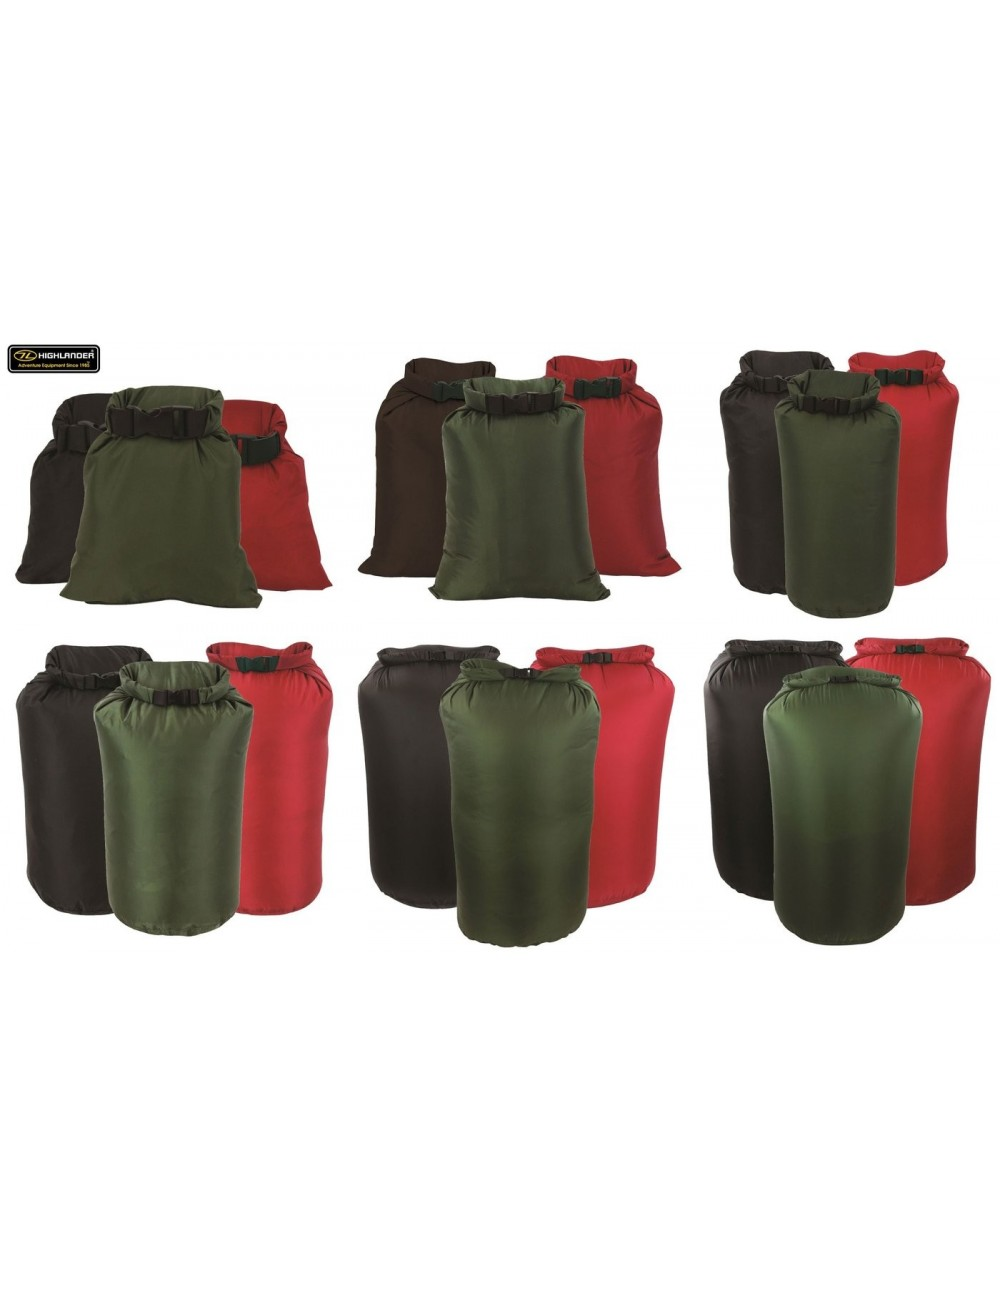 HIGHLANDER DB109 LIGHTWEIGHT WATERPROOF ROLL TOP DRY BAG SACK POUCH RED 4L